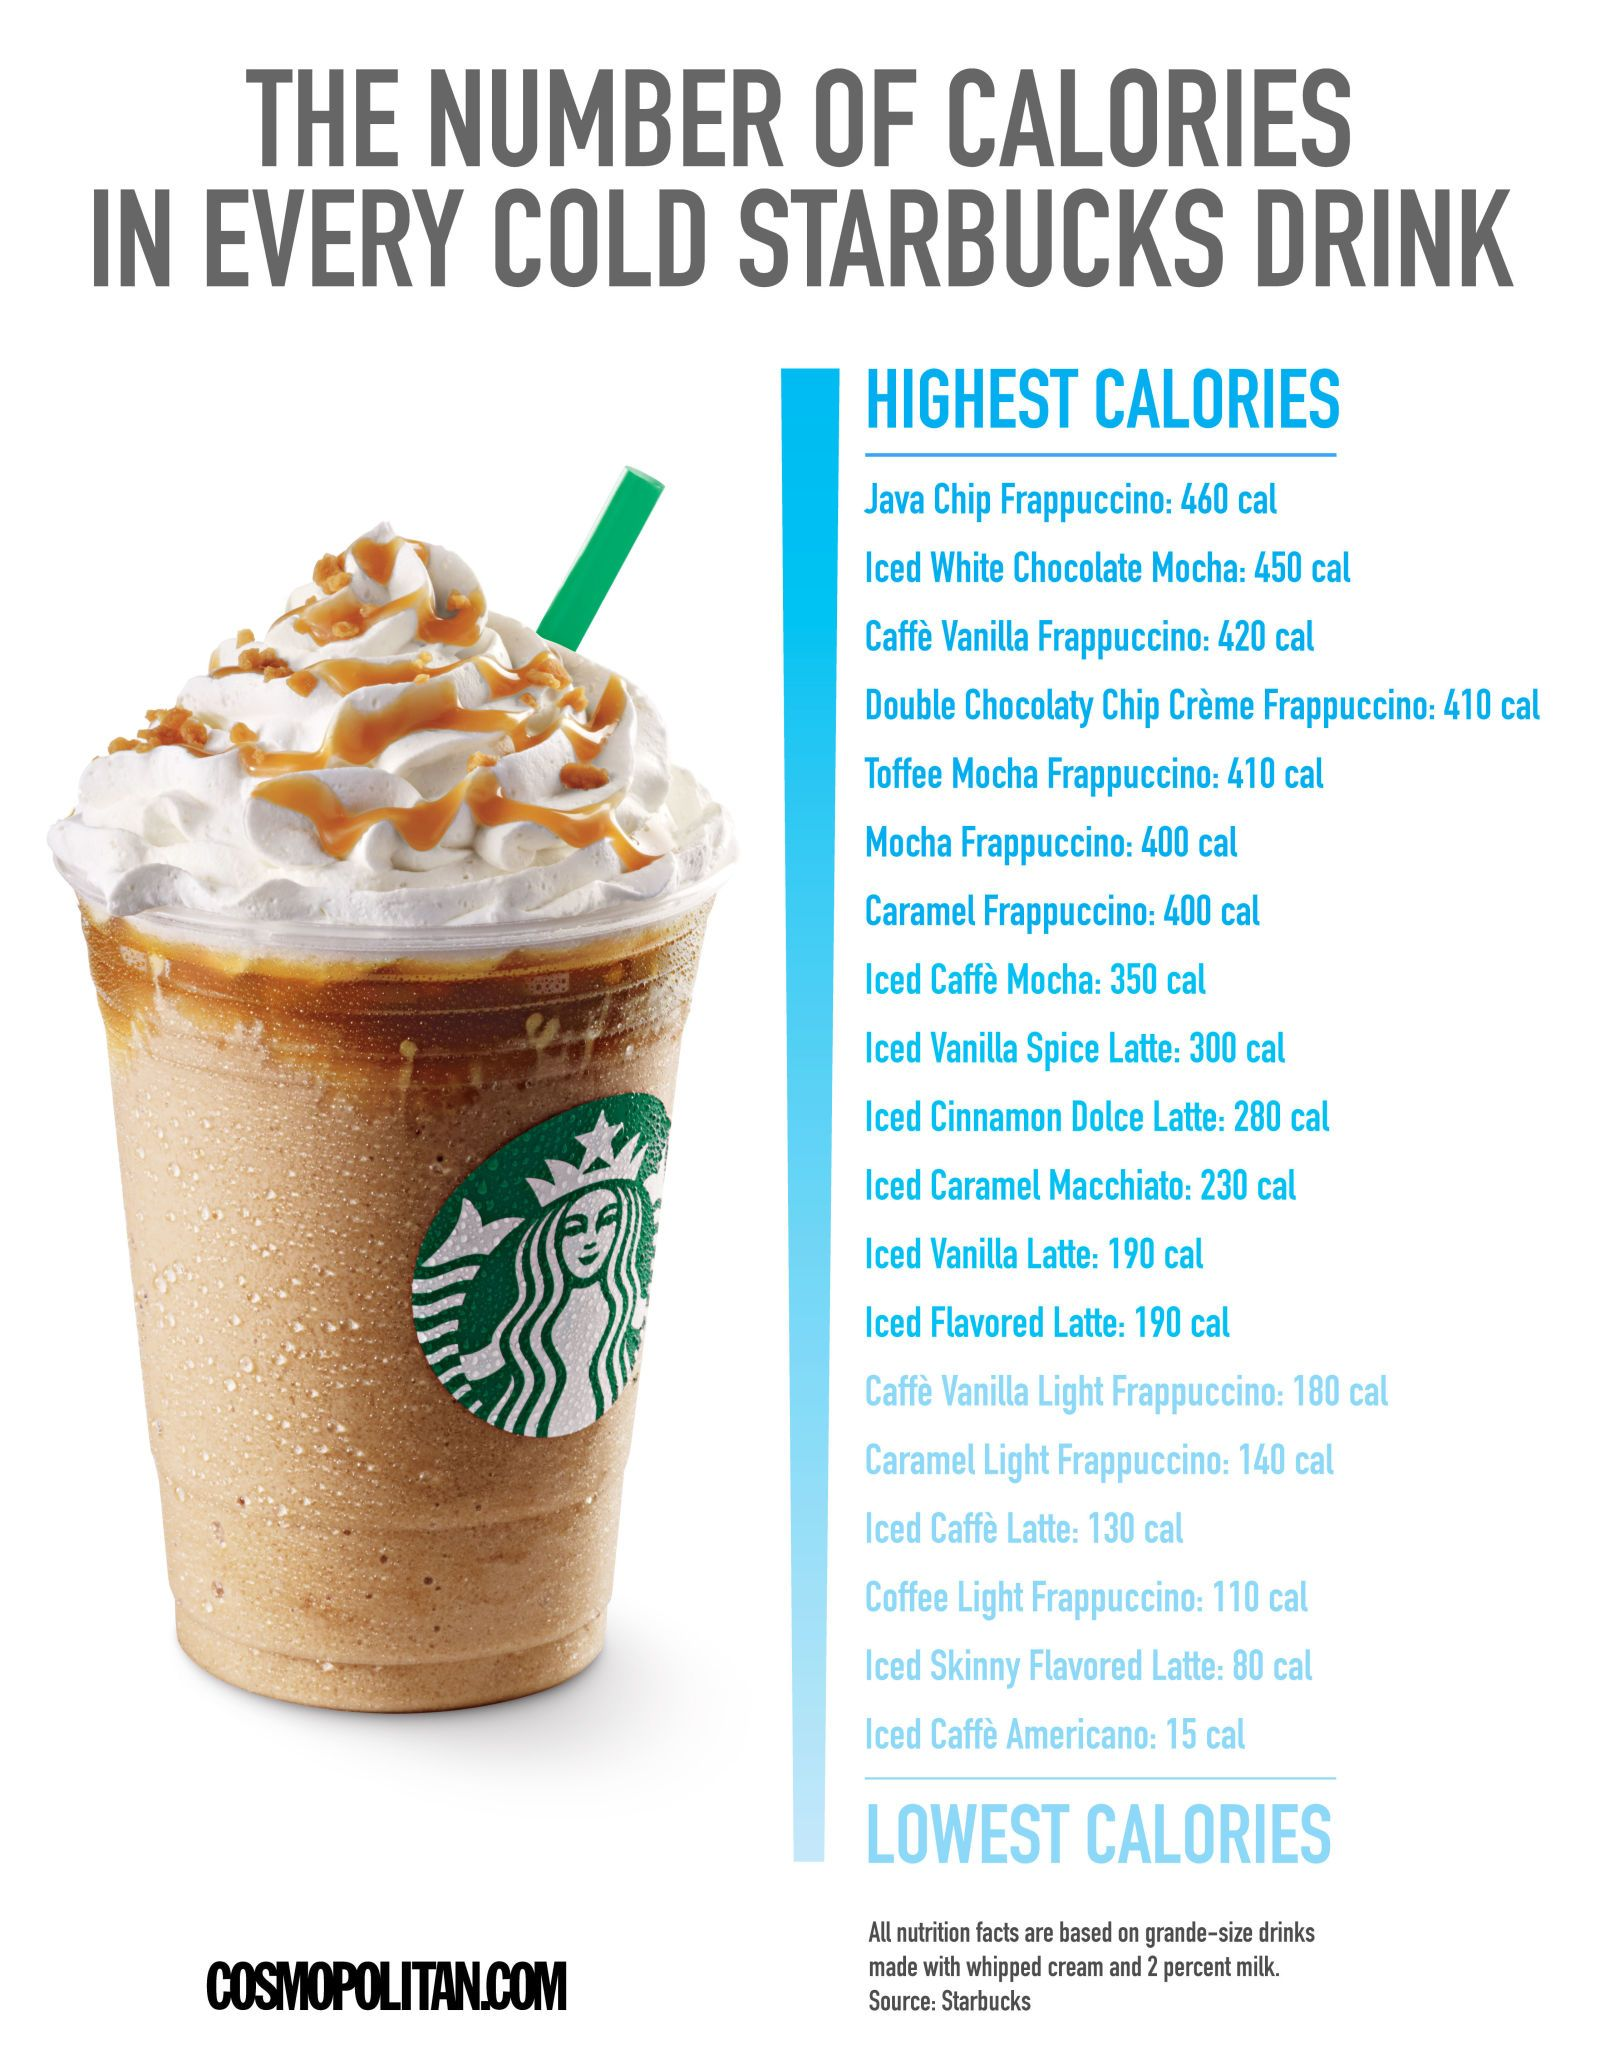 How Many Calories Are In Your Favorite Cold Starbucks Drink